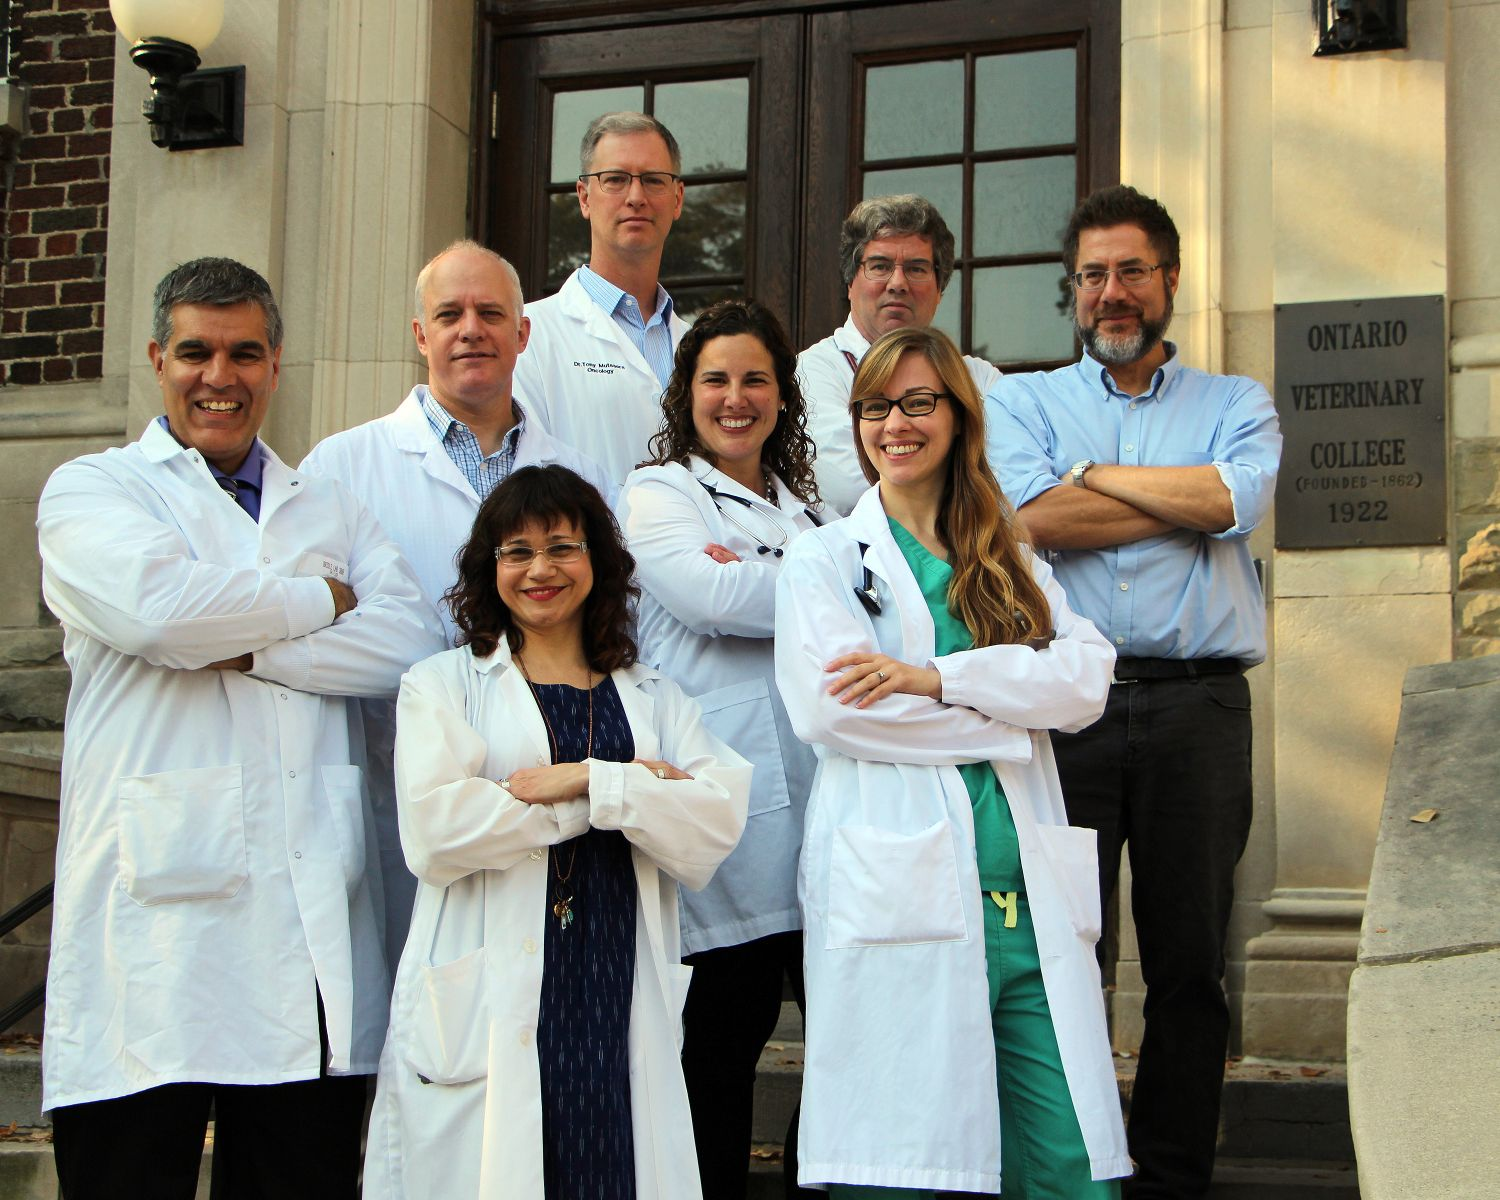 Photo of Ontario Veterinary College researchers who are part of the DOGBONe research group.